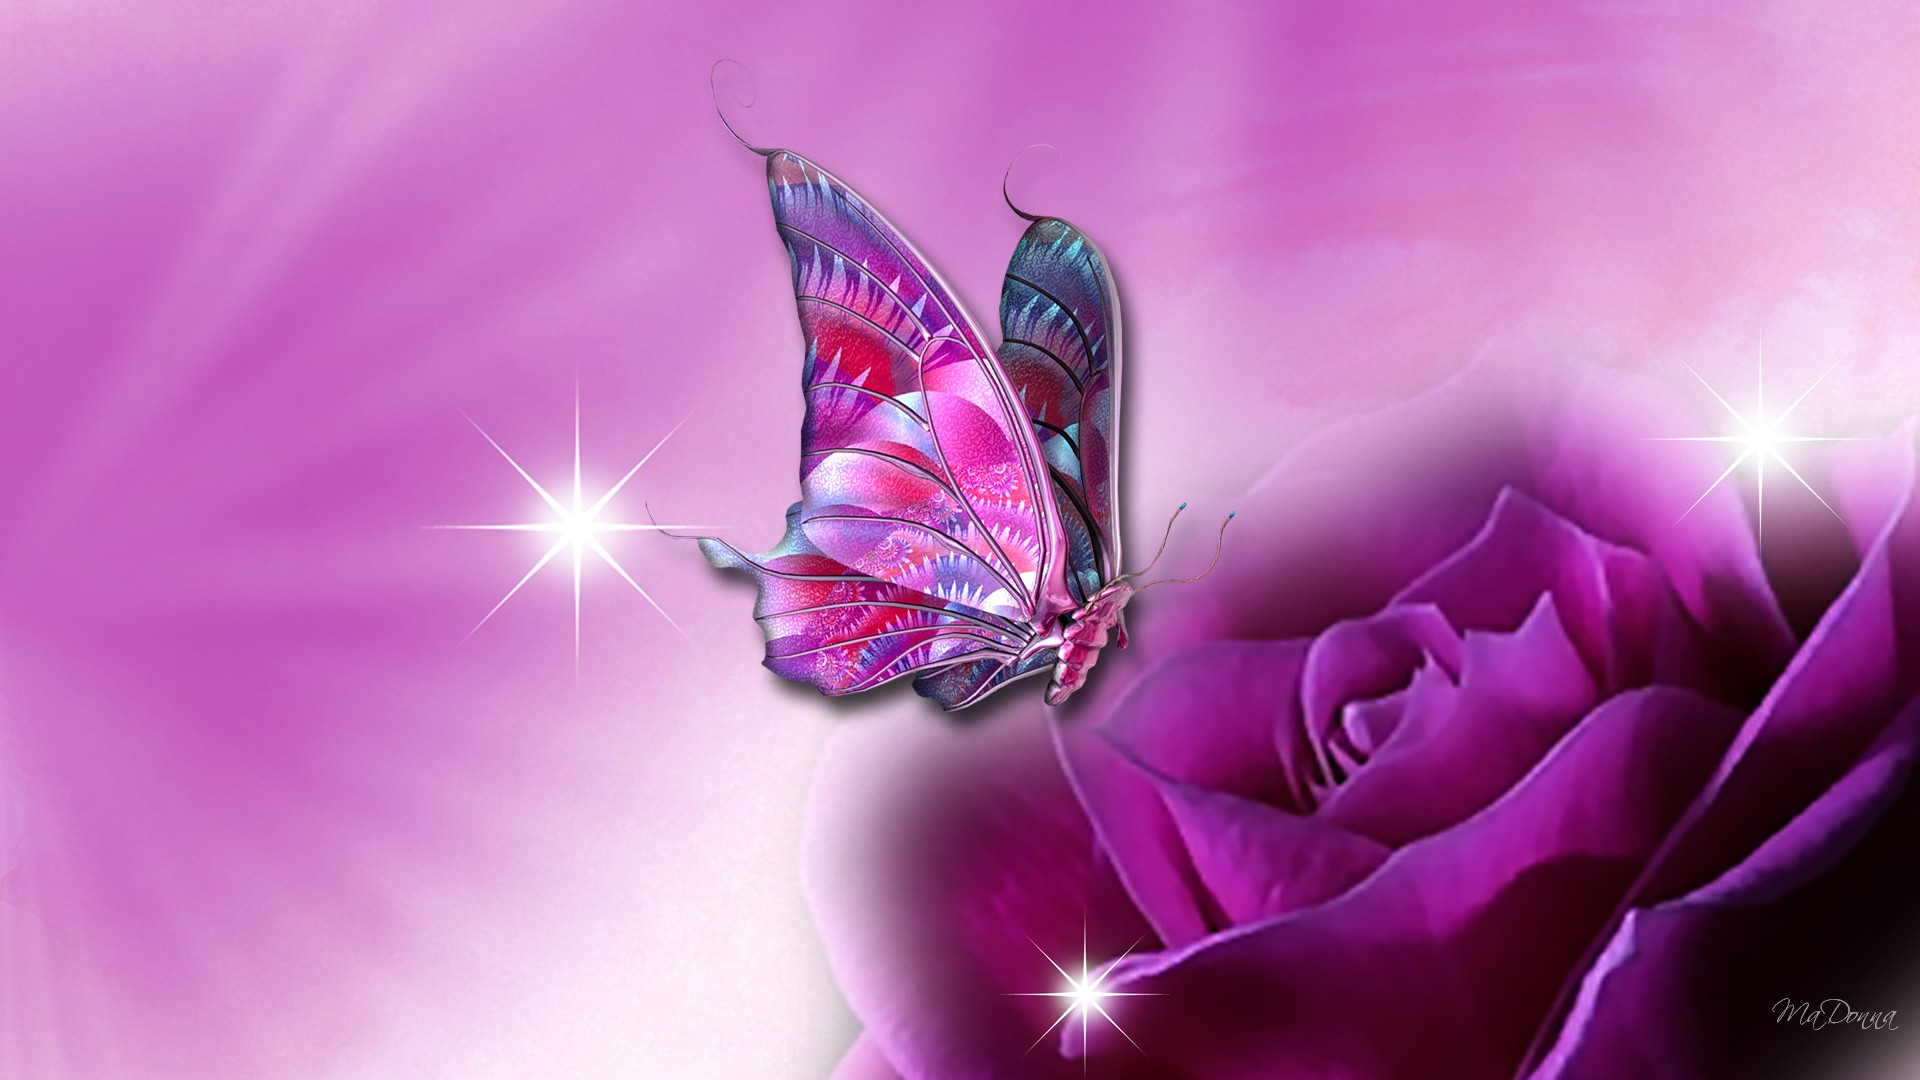 Wallpaper download for laptop - Download Awesome Butterfly For Laptop Wallpaper Full Hd Wallpapers